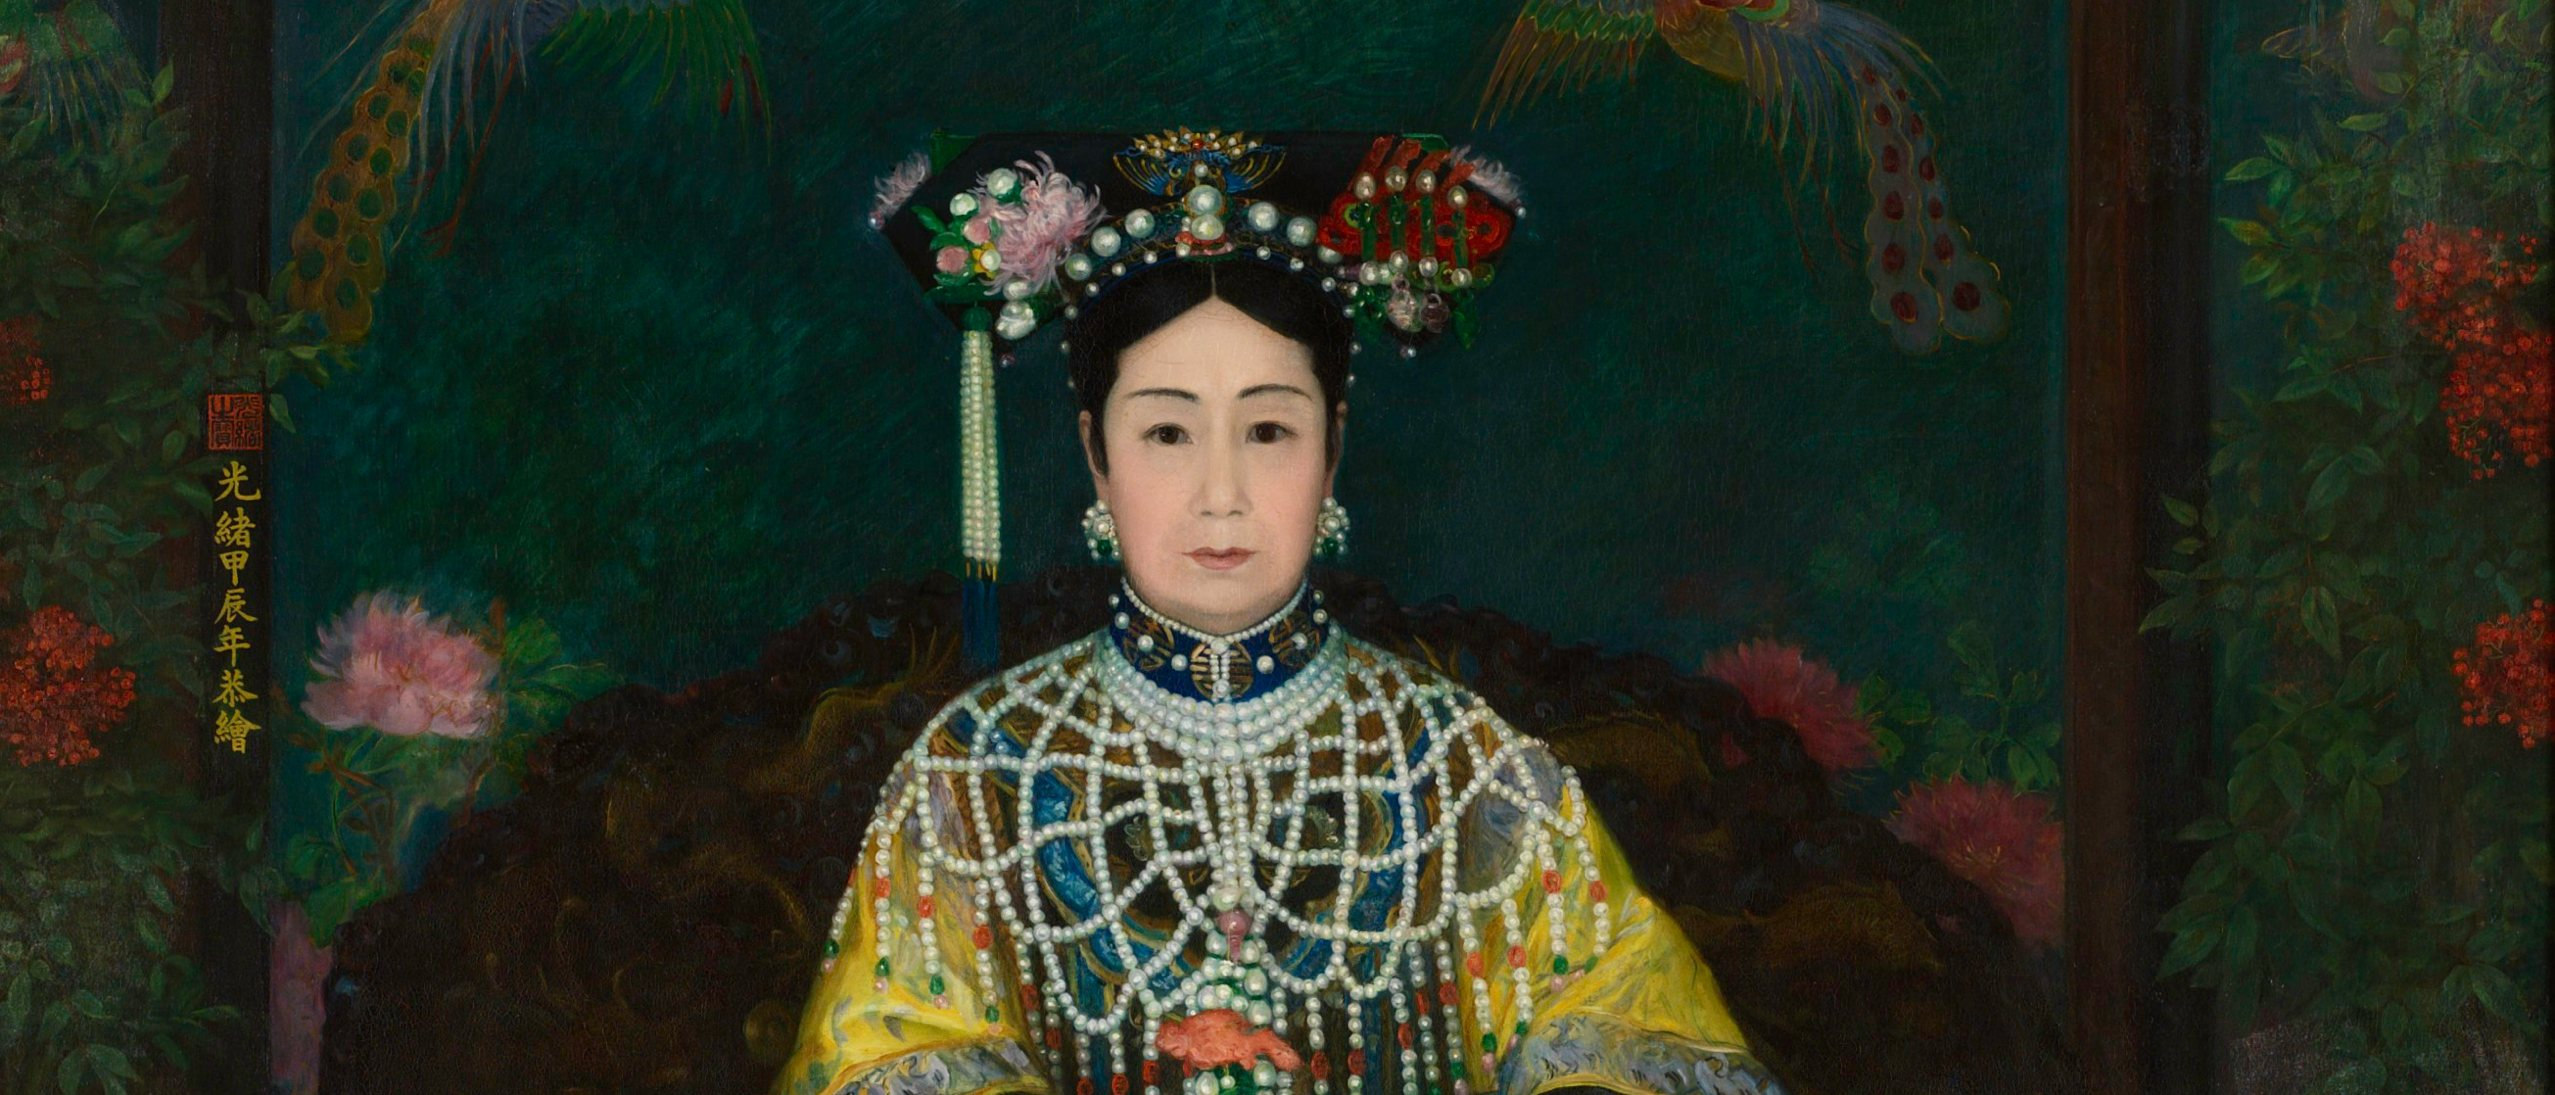 painting of the empress if yellow decorated dress with large headdress and jewelry against a dark green-blue background